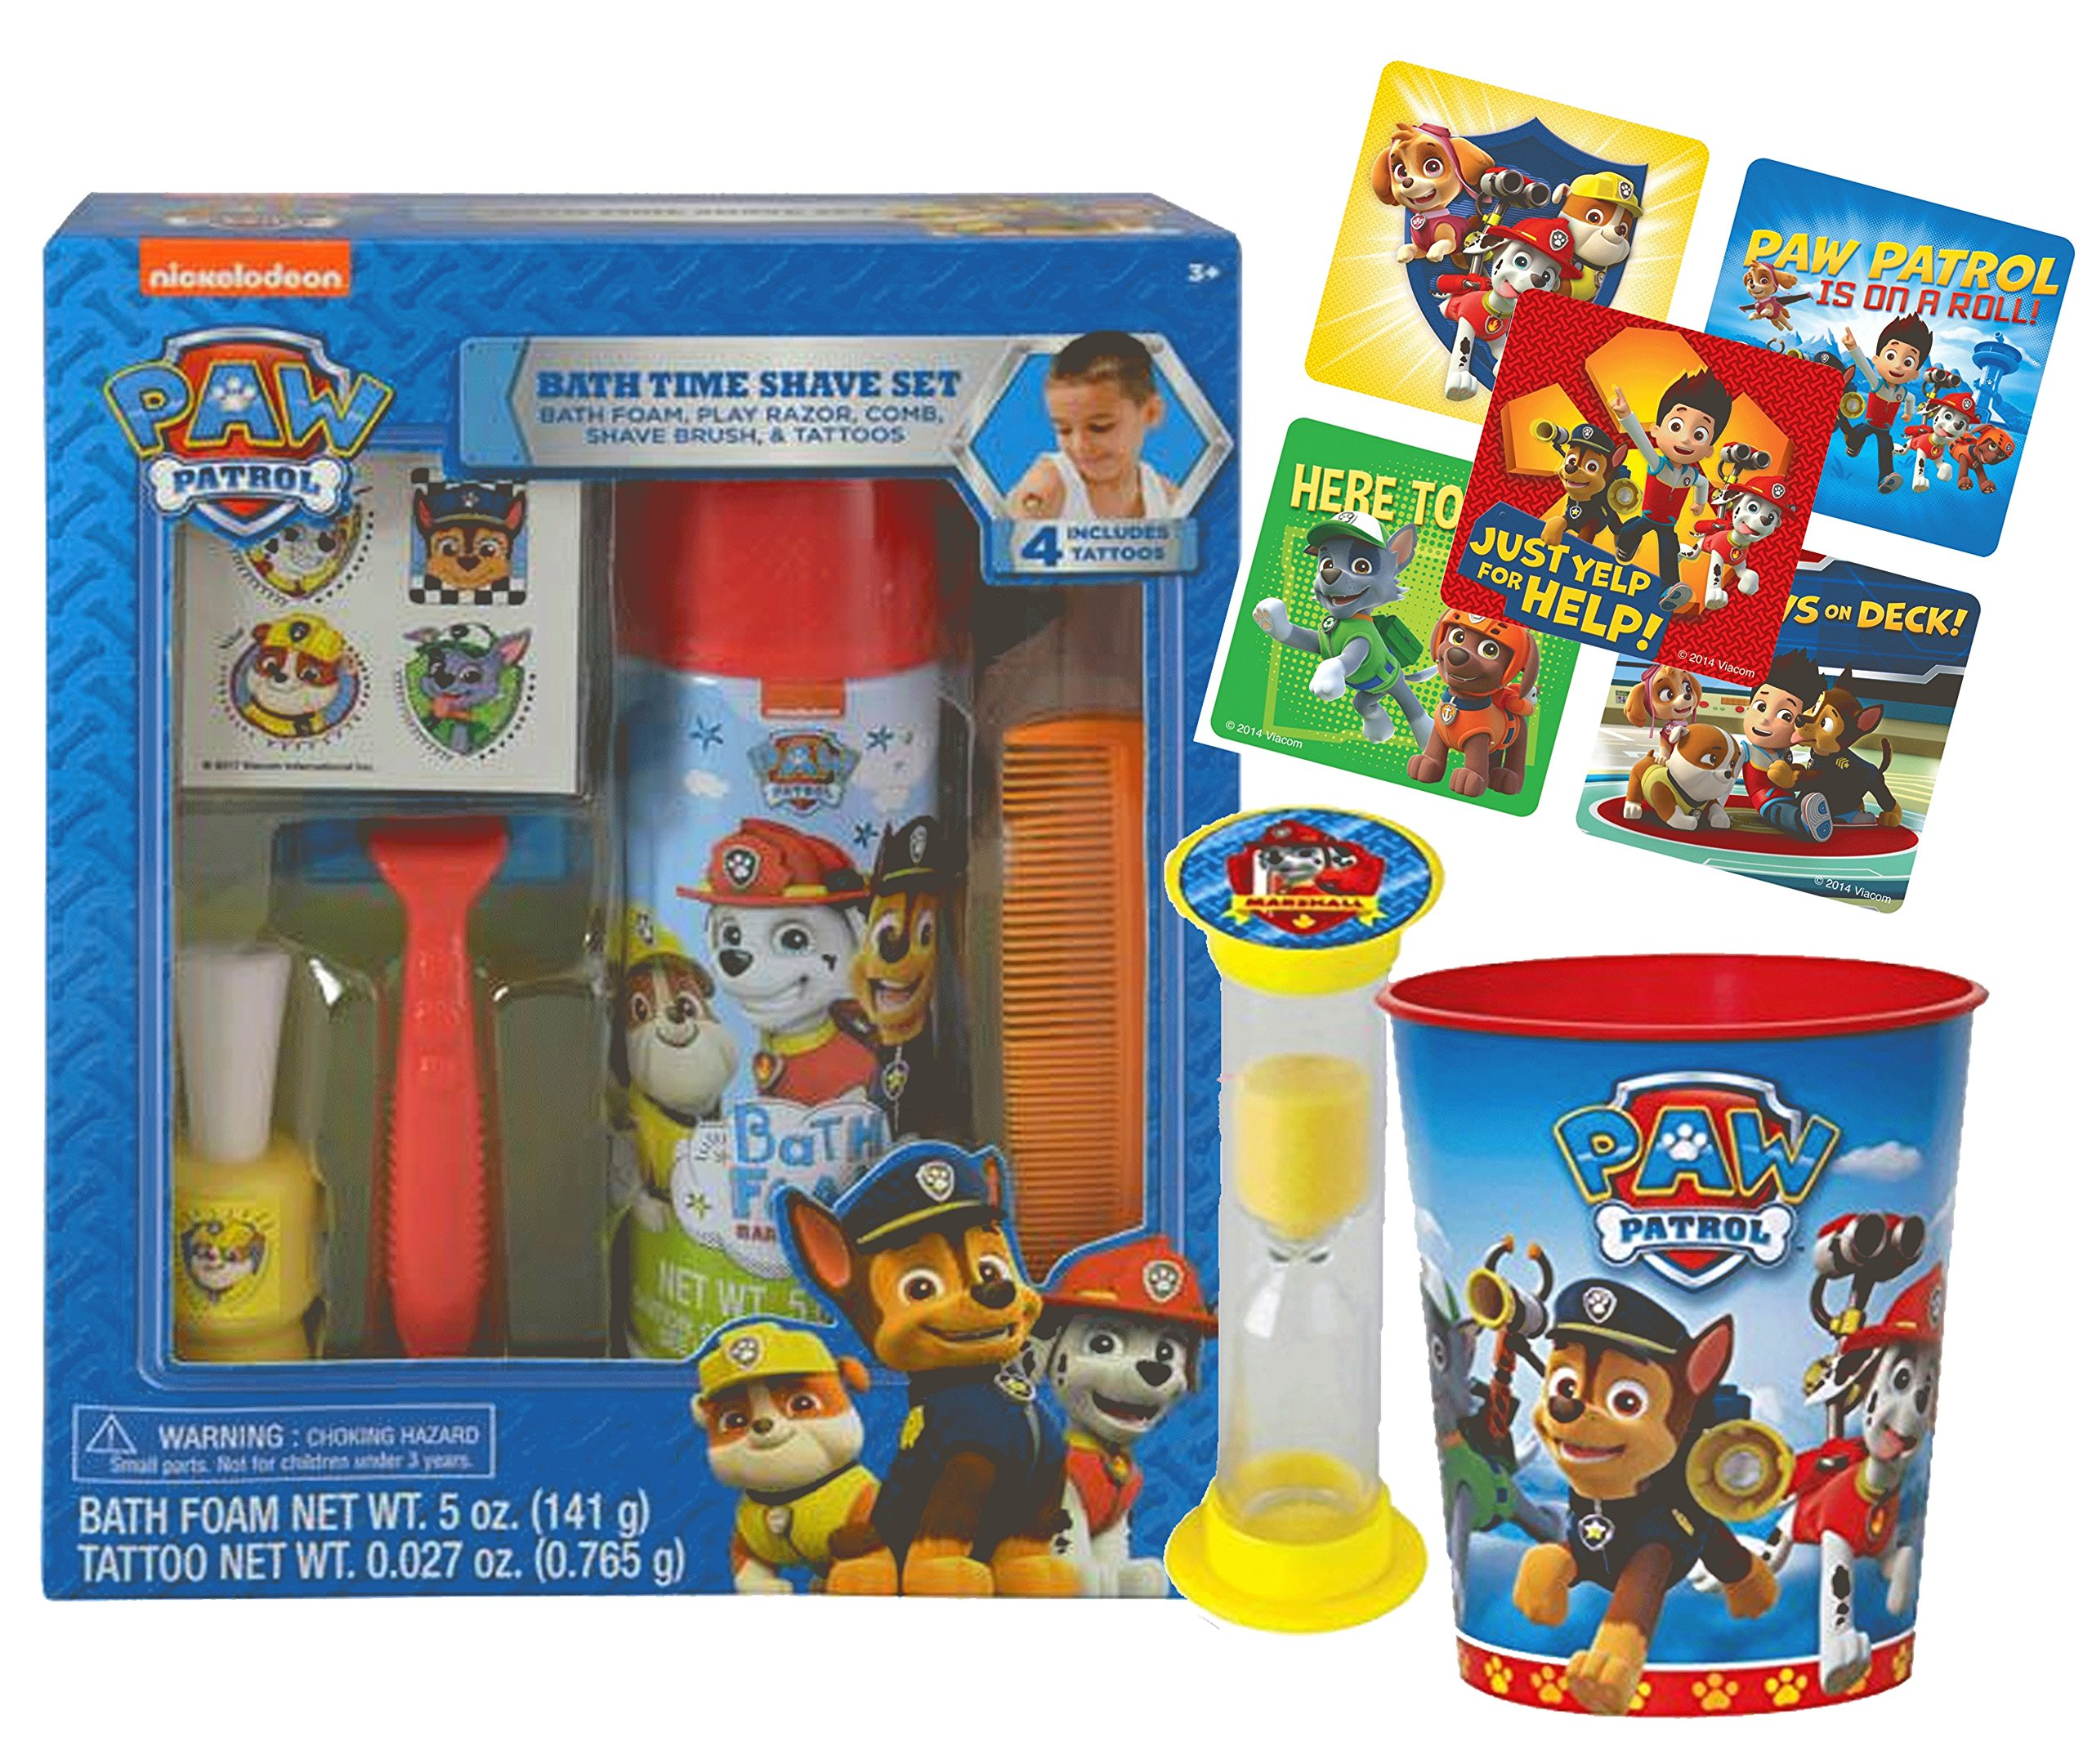 UPD Paw Patrol Groom & Go Kids Bath Time Activity Set! Bath Foam, Play Razor, Shave Brush, Comb, Rinse Cup & Time to Get Out Bath Timer! Plus Bonus Paw Patrol Stickers & Tattoos!